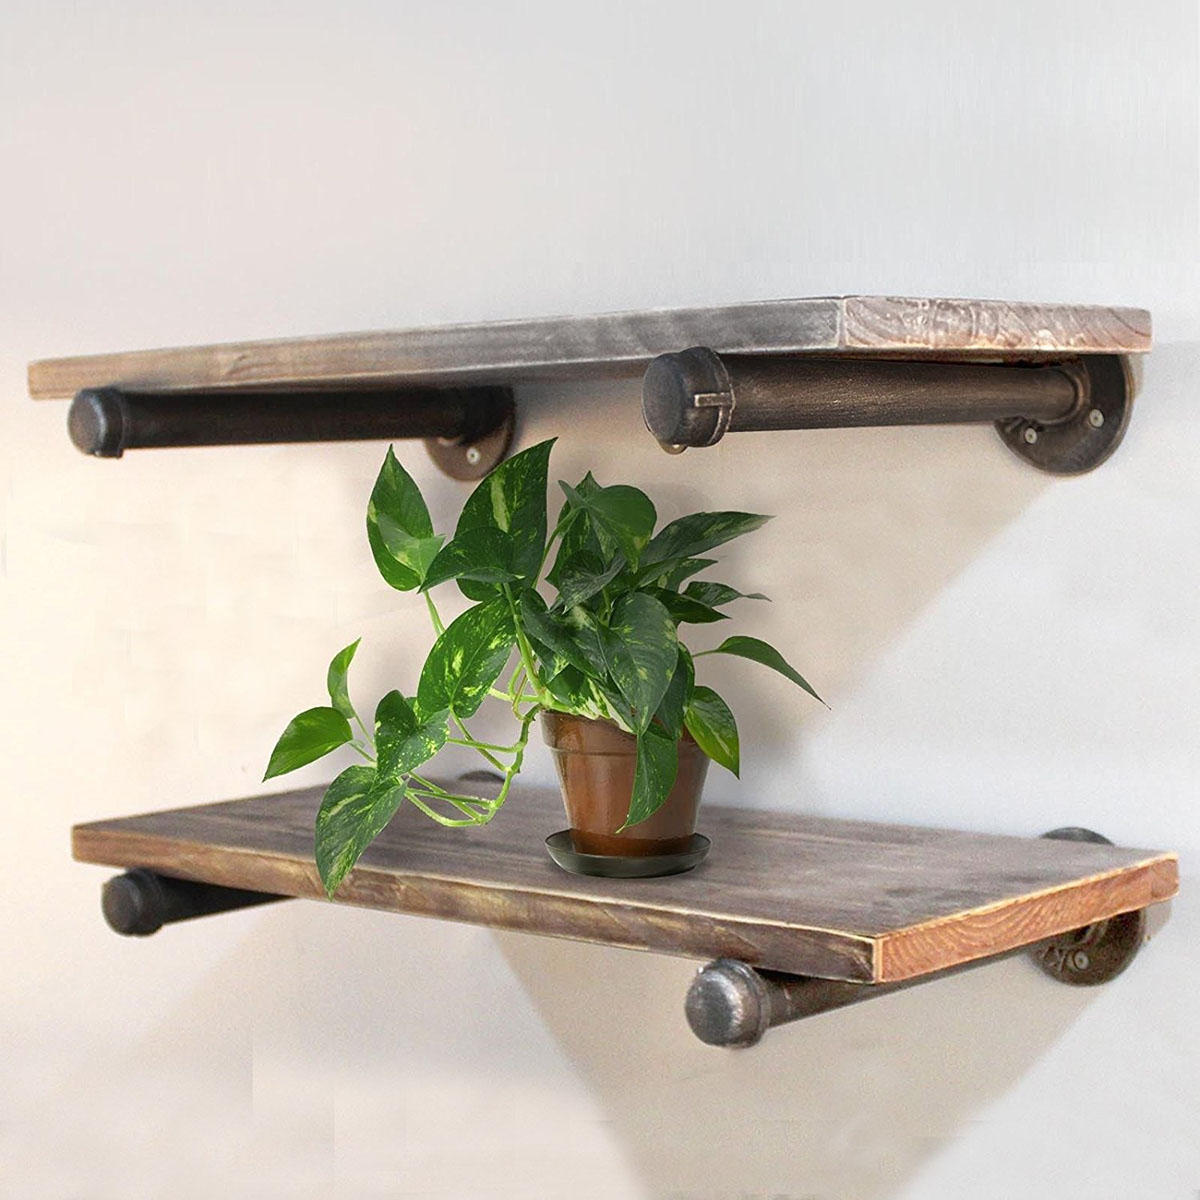 rustic industrial pipe shelf bracket floating wooden board brackets wall mounted holder cod home decorators collection flooring installation secure furniture without drilling